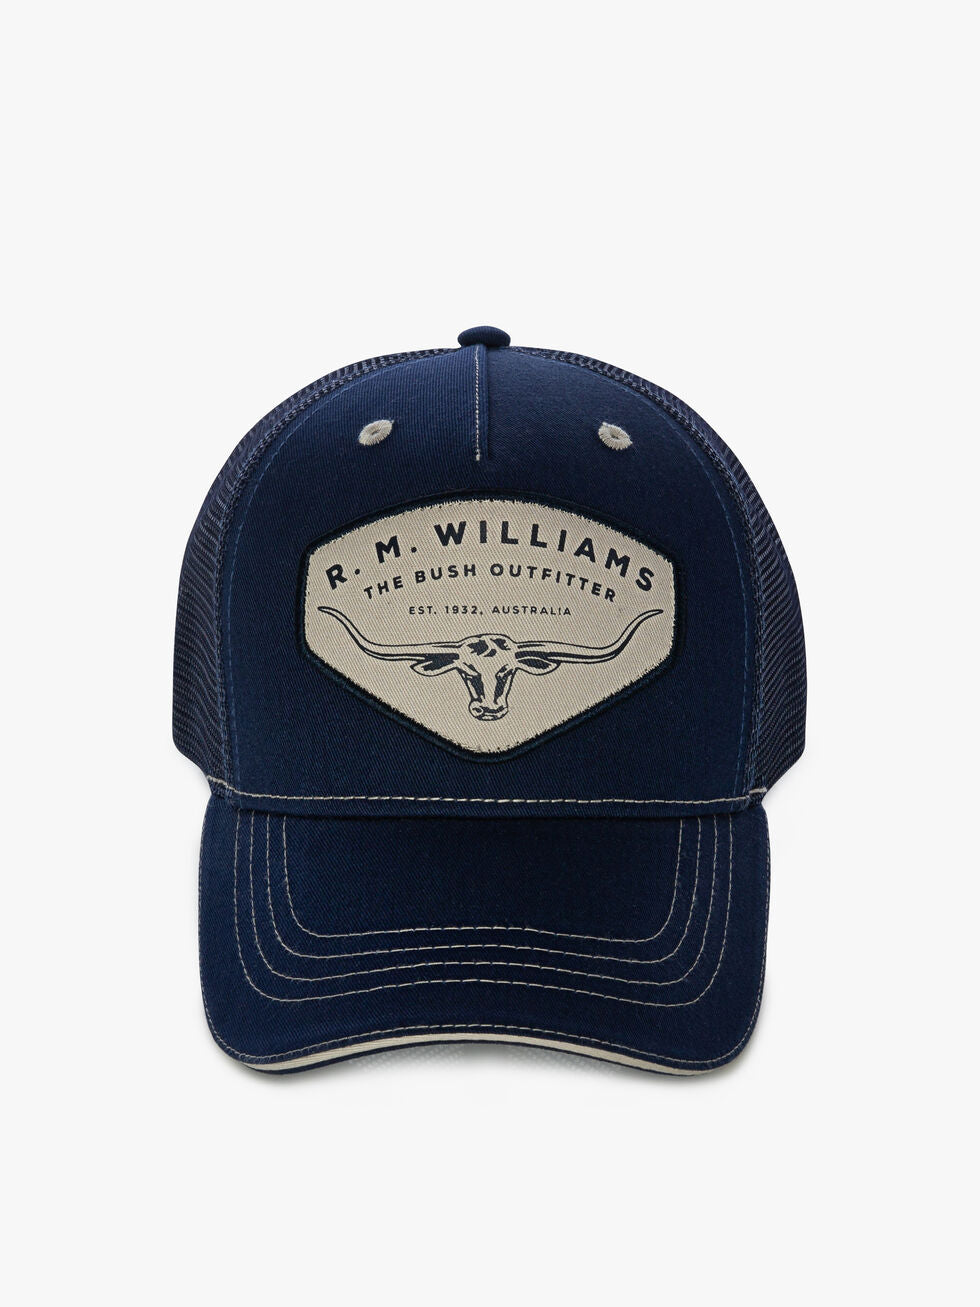 R.M. Williams Trucker Cap - Navy